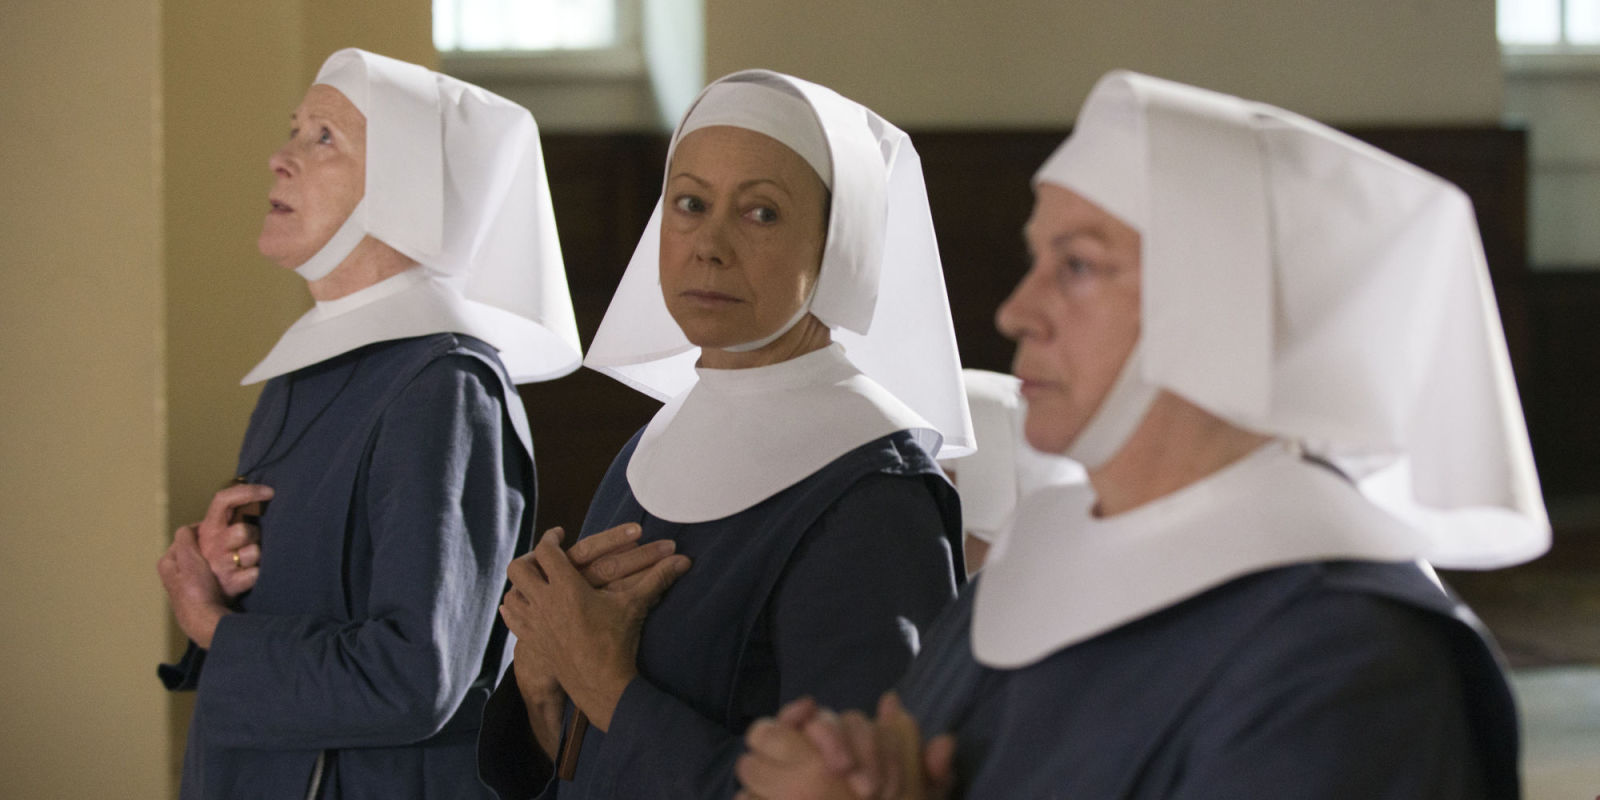 The people of Twitter react as Call The Midwife's season five ...